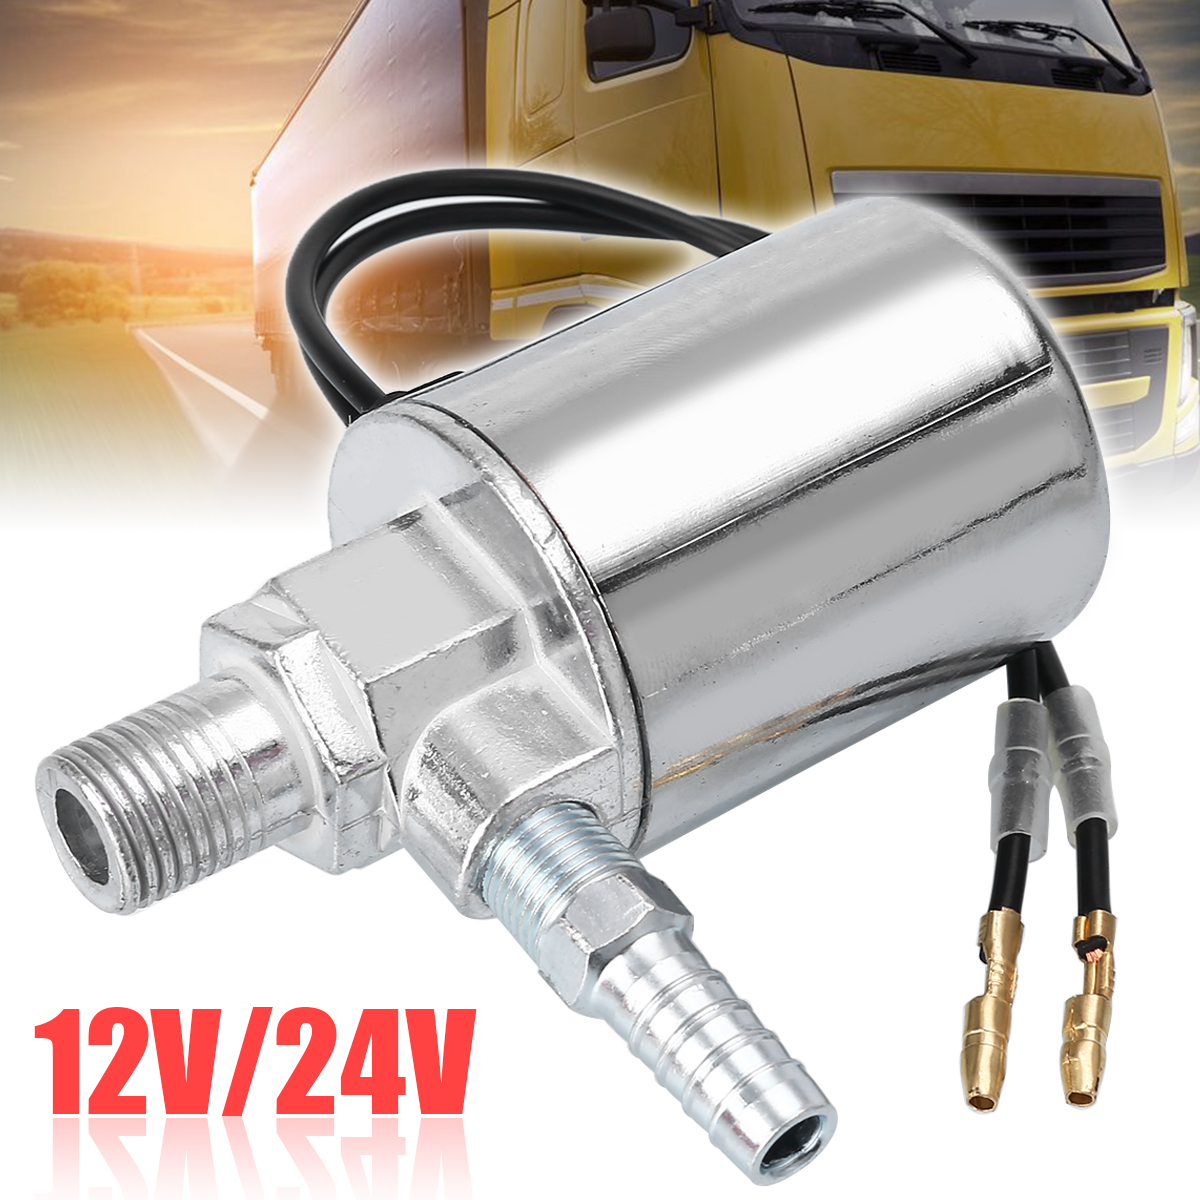 Mayitr 12V 24V Electric Solenoid Valve Air Horns & Air Ride Systems 1/4inch Metal Train Truck Air Horn Solenoid Valve